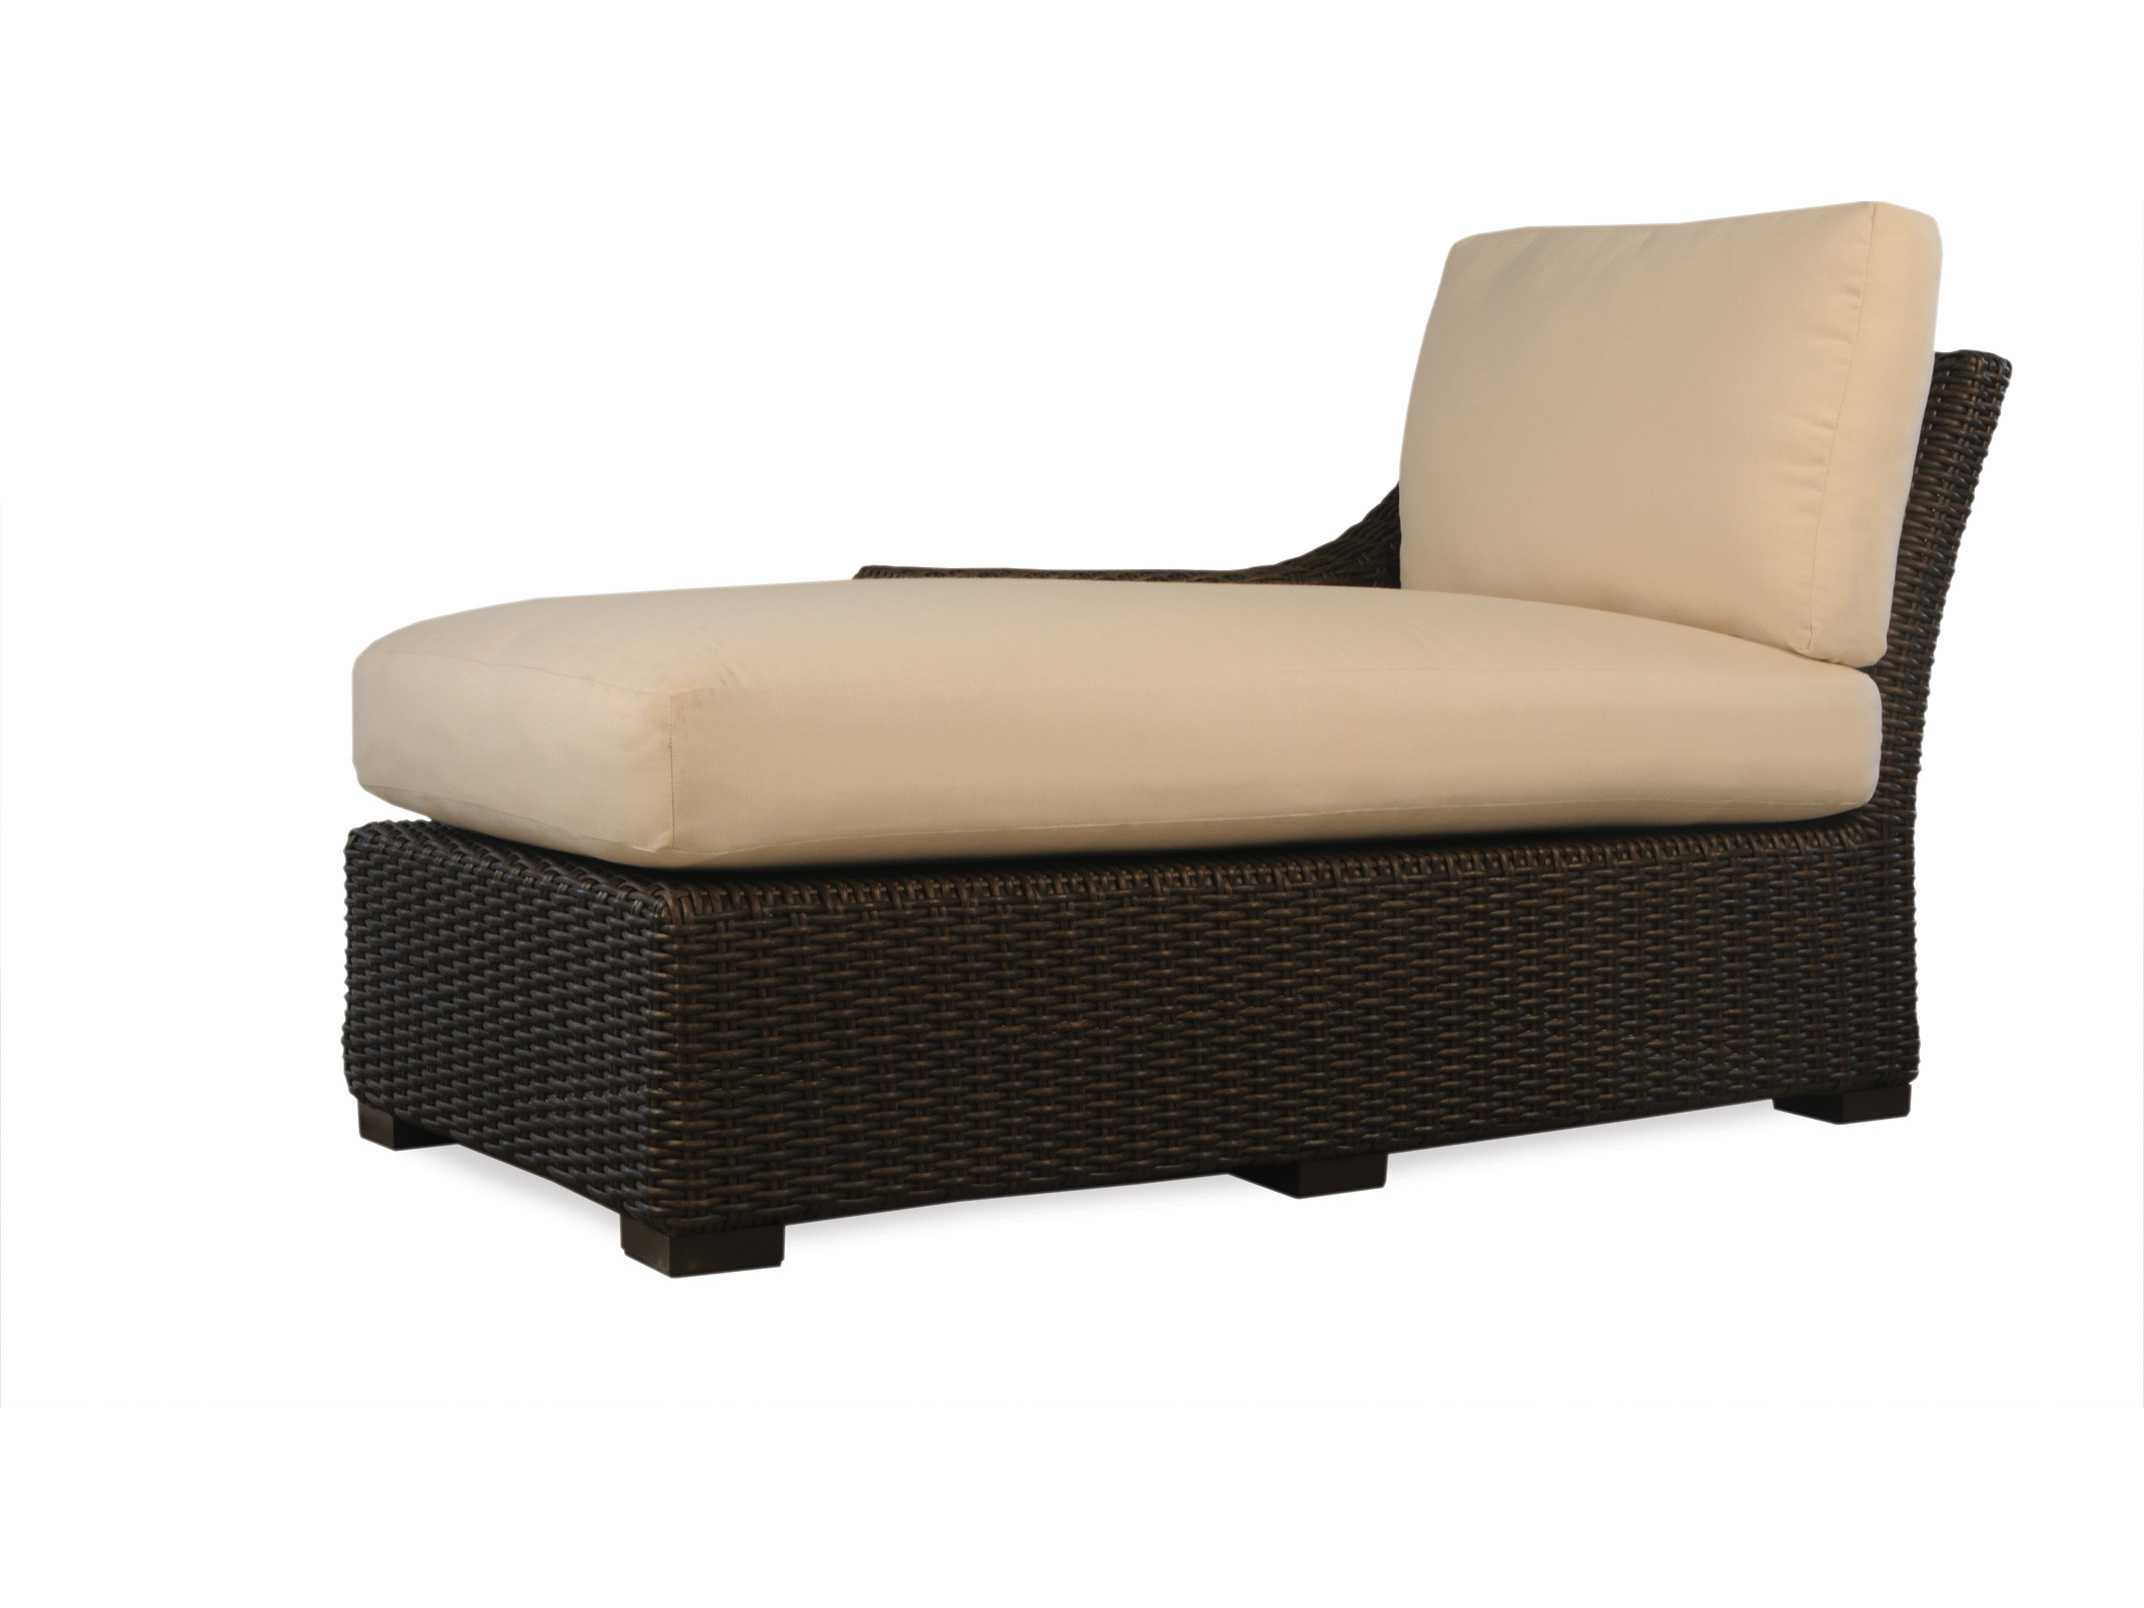 lloyd flanders mesa wicker right arm chaise lounge 298025. Black Bedroom Furniture Sets. Home Design Ideas